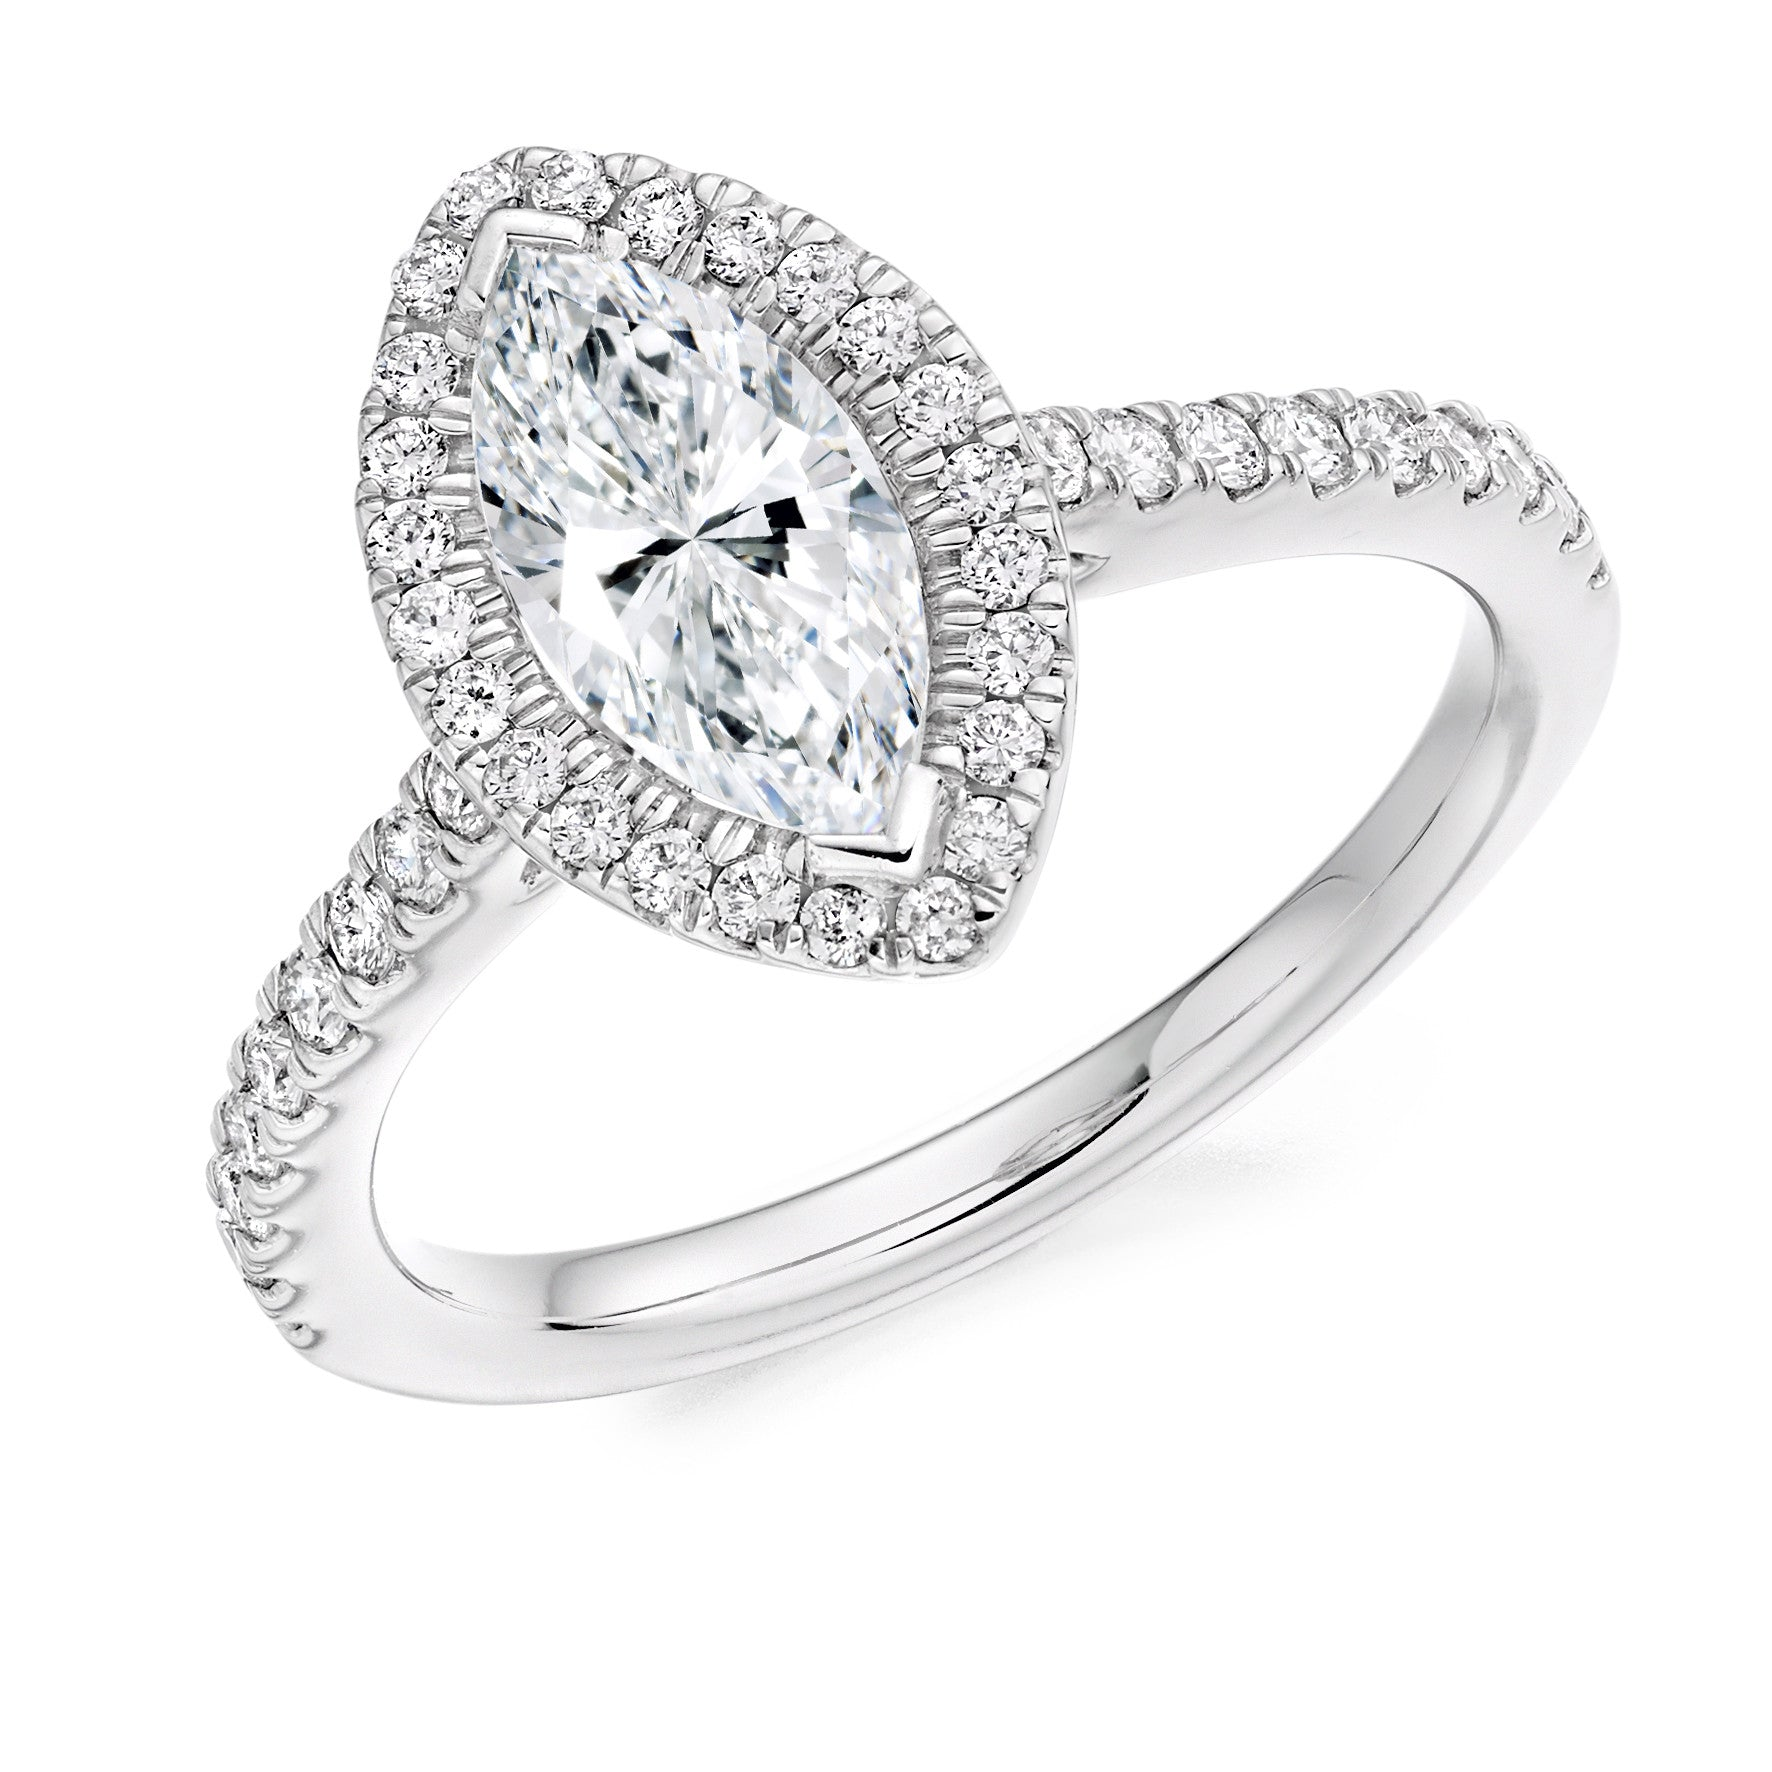 apparel costco ring p cut stone rings princess jewellery uk platinum gifts trilogy diamond